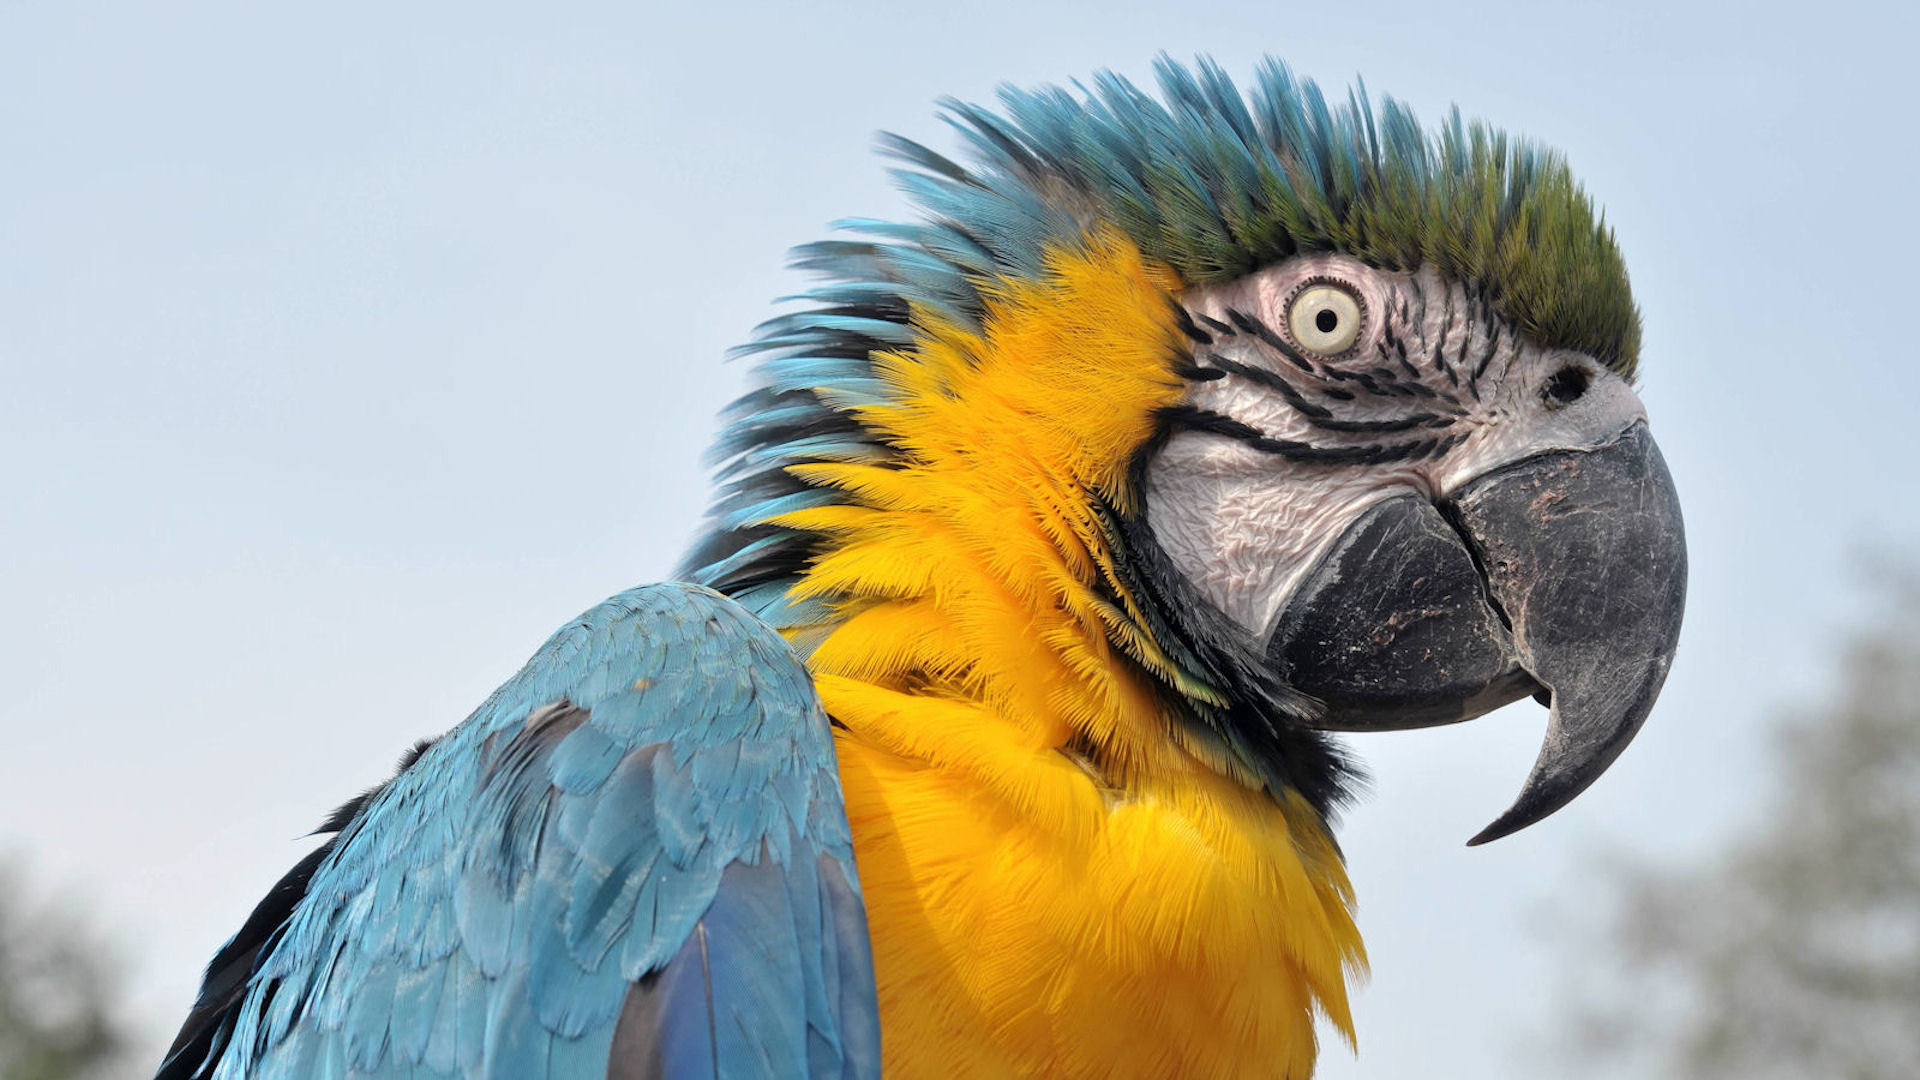 Download full hd Macaw PC background ID:46494 for free